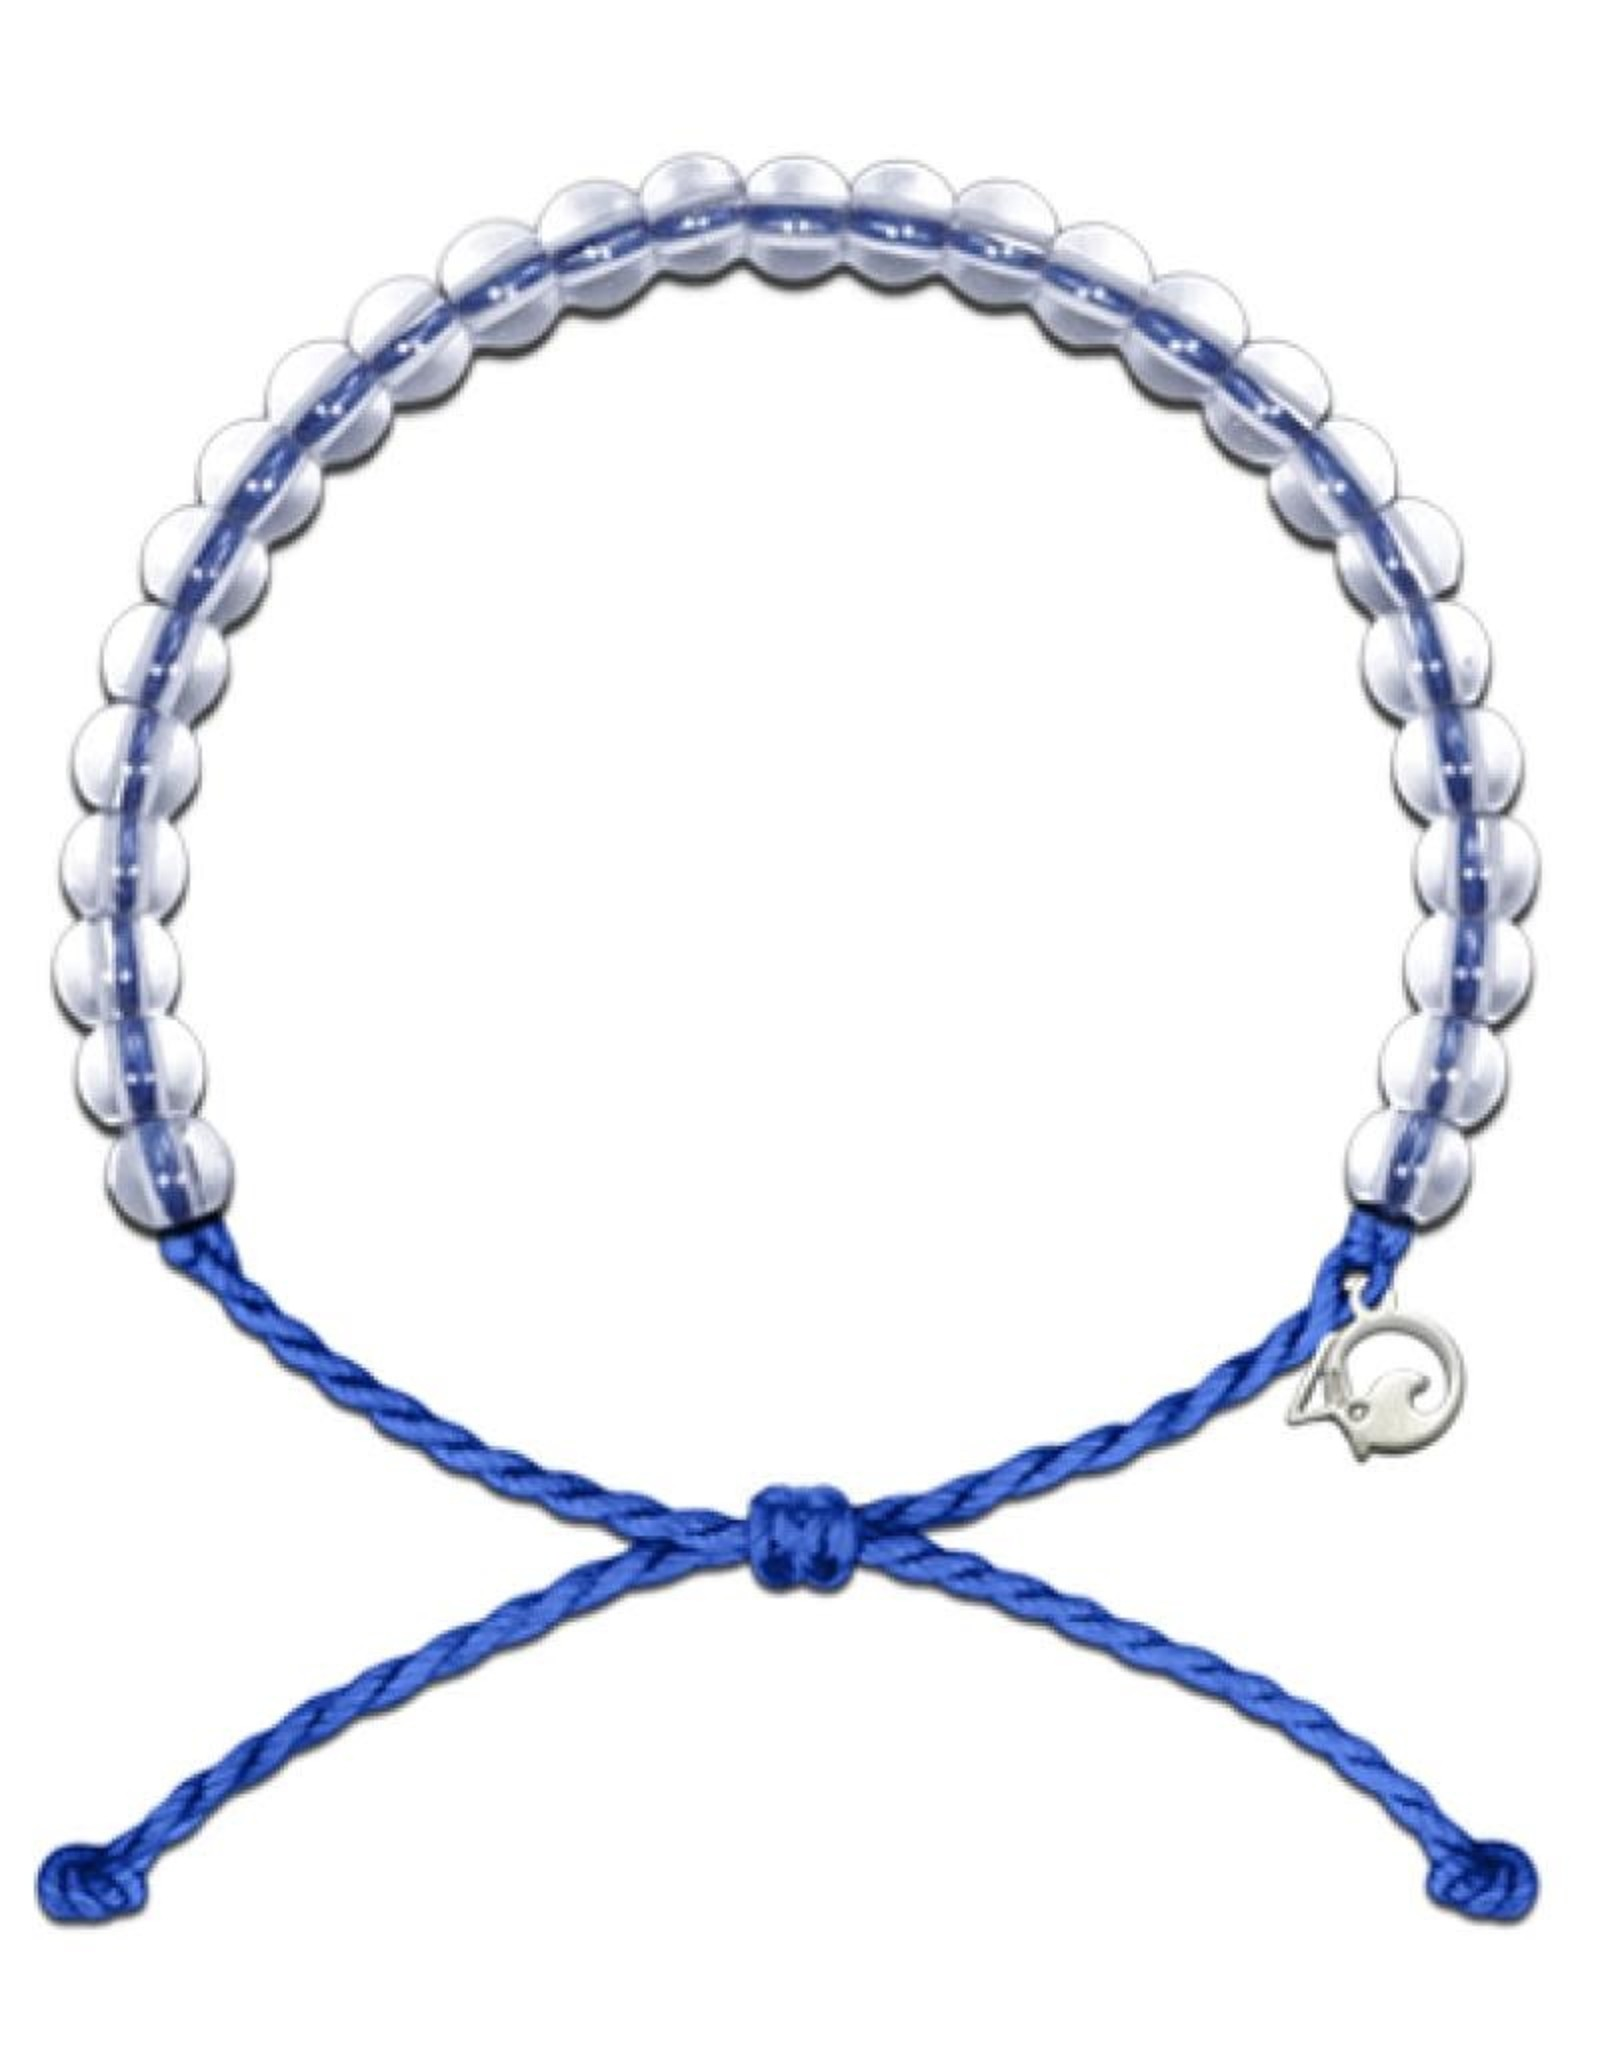 4Ocean Beaded Bracelet Signature Blue